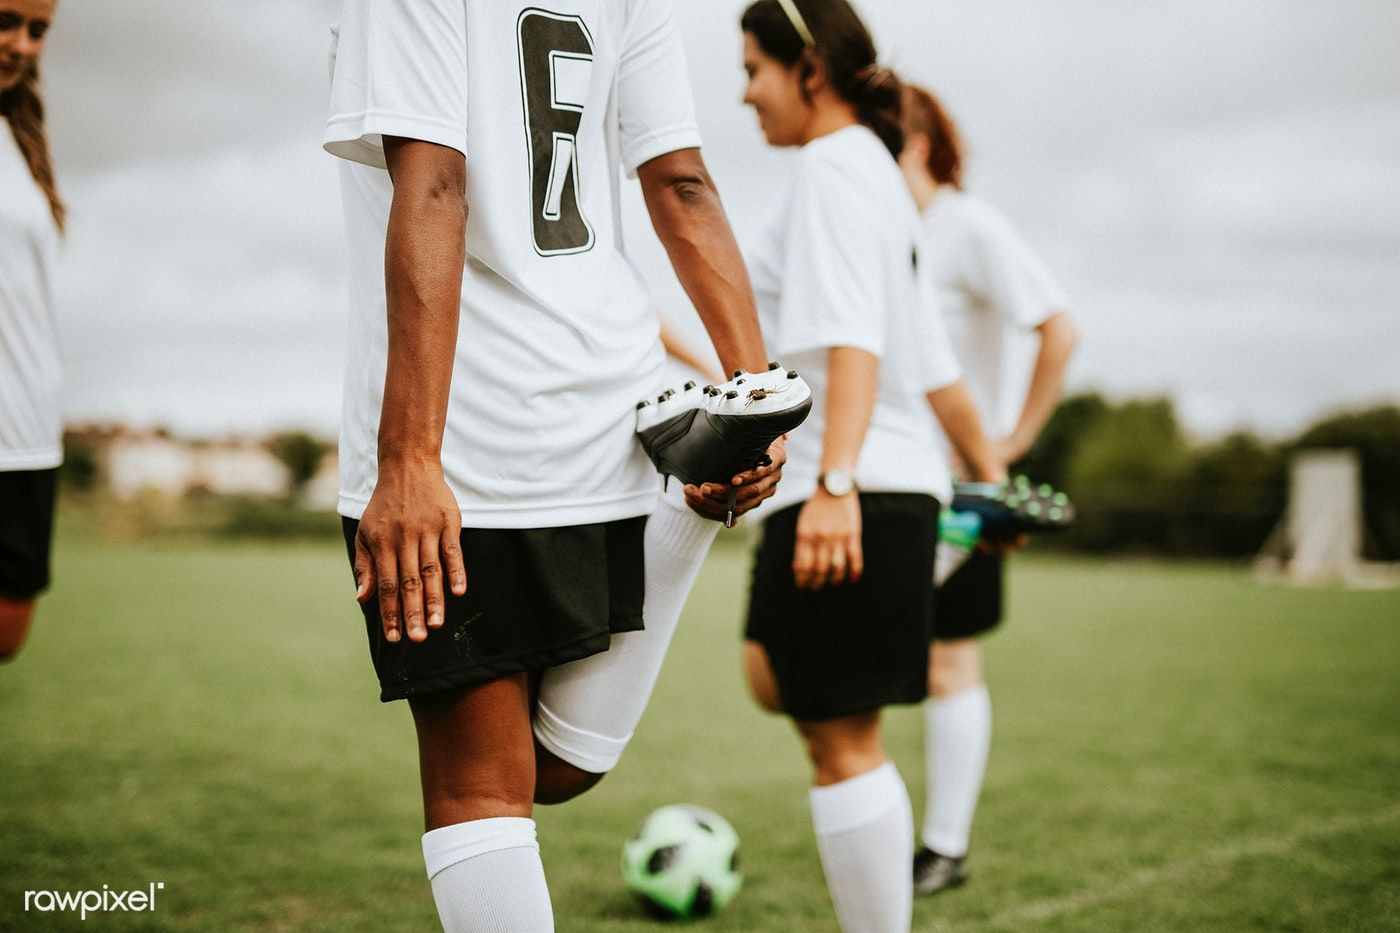 Download premium image of female soccer team players